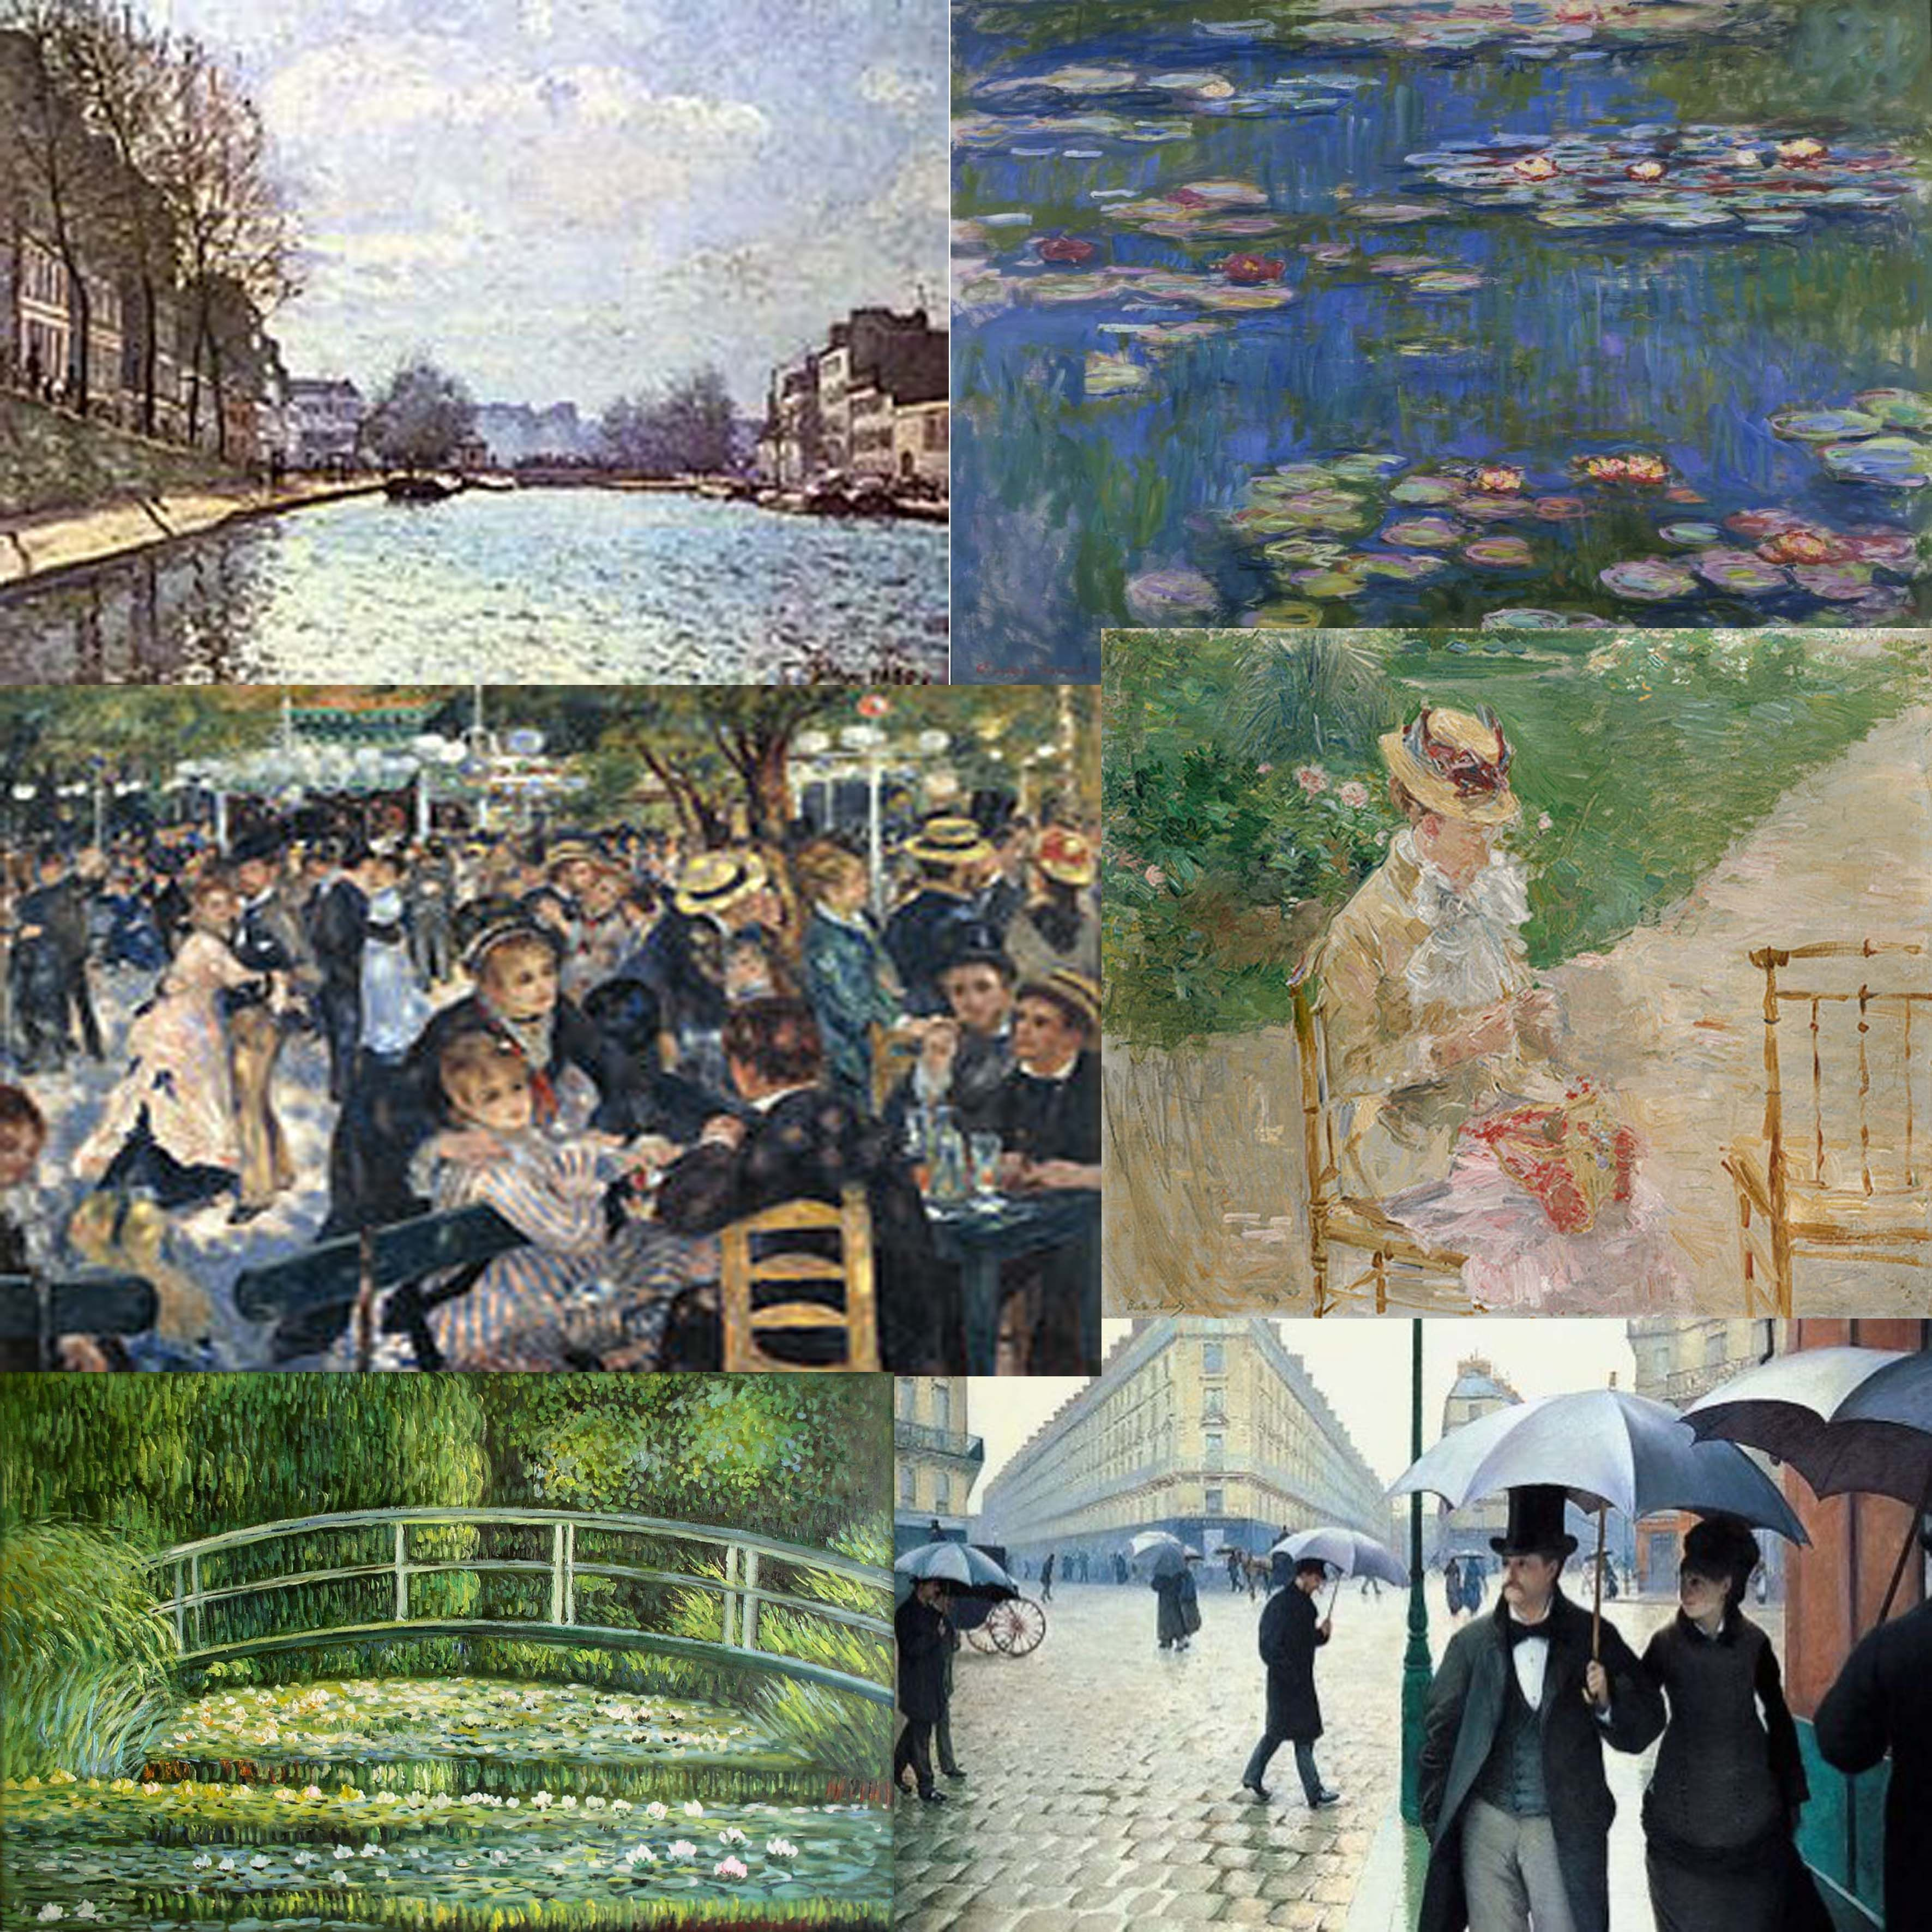 The best Impressionist Museum - Musee d'Orsay